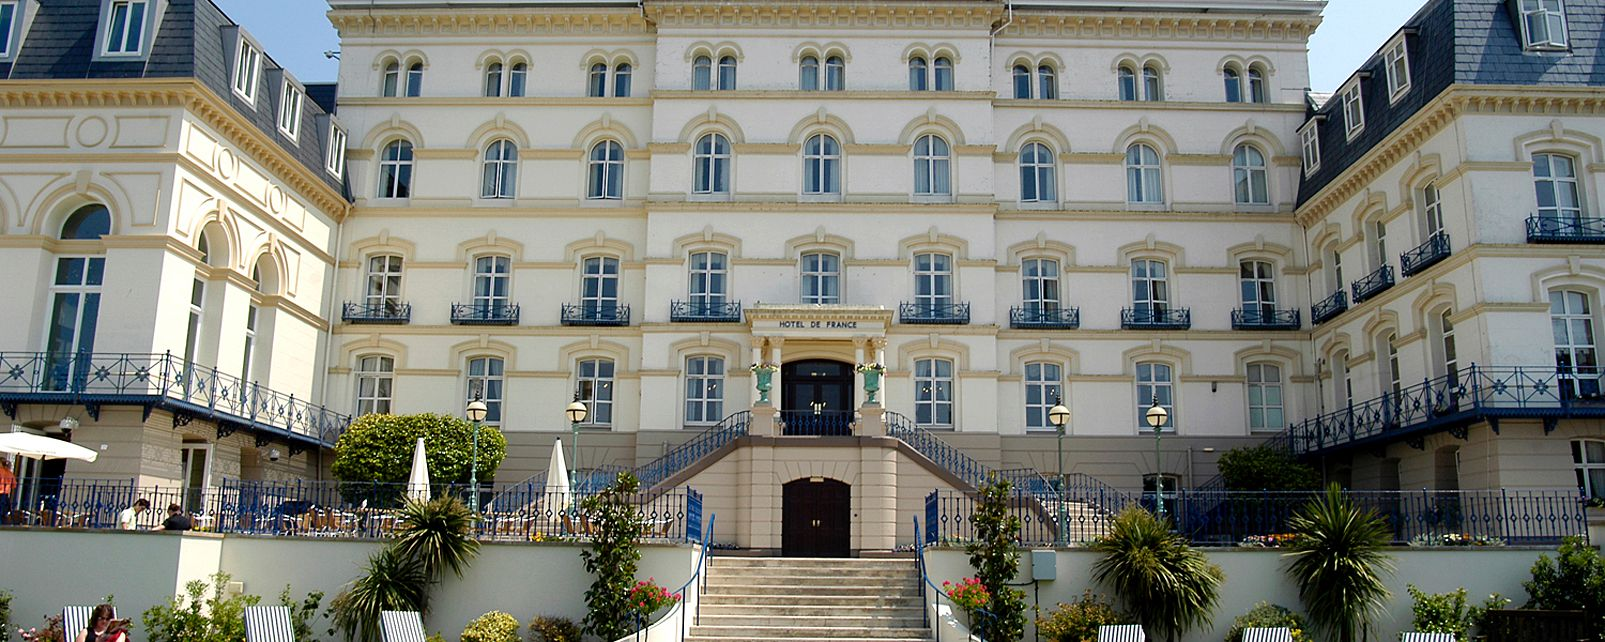 Hotel de france jersey in st helier united kingdom for Hotels jersey